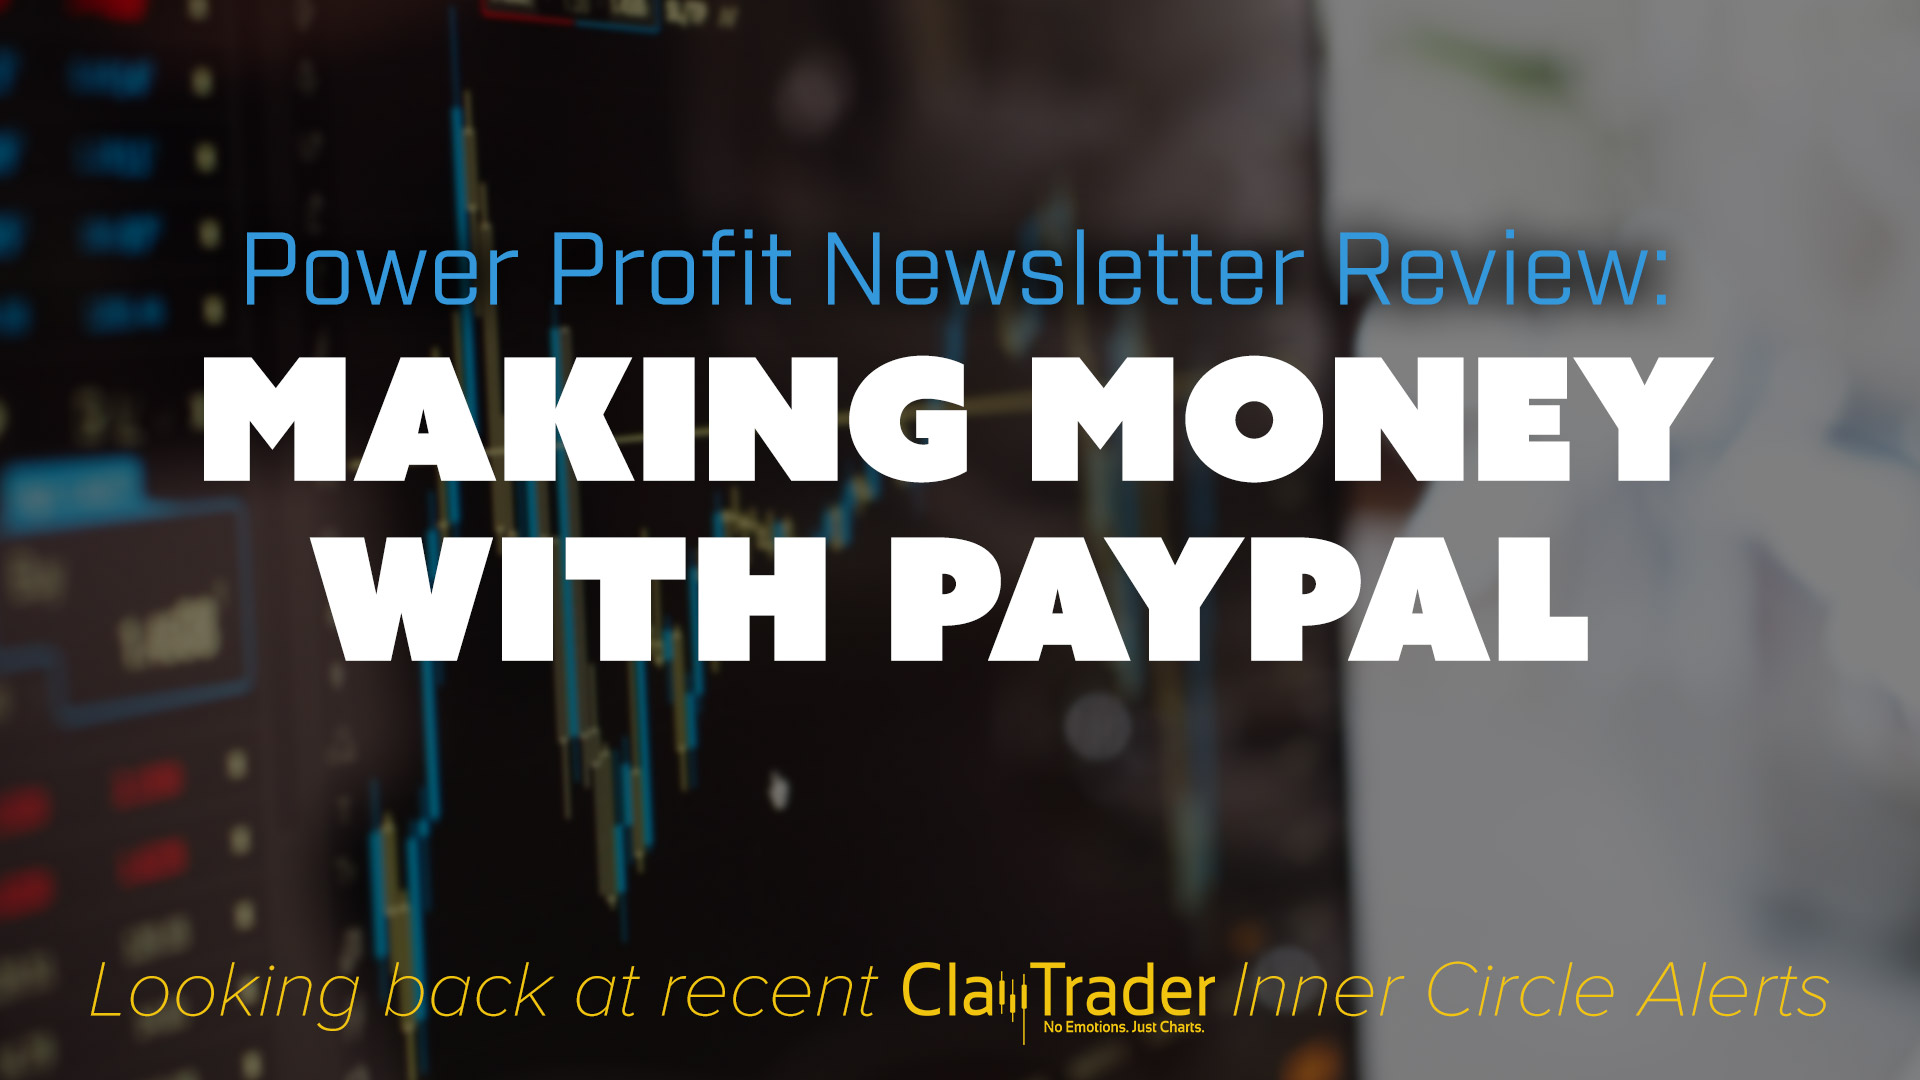 Making Money With PayPal